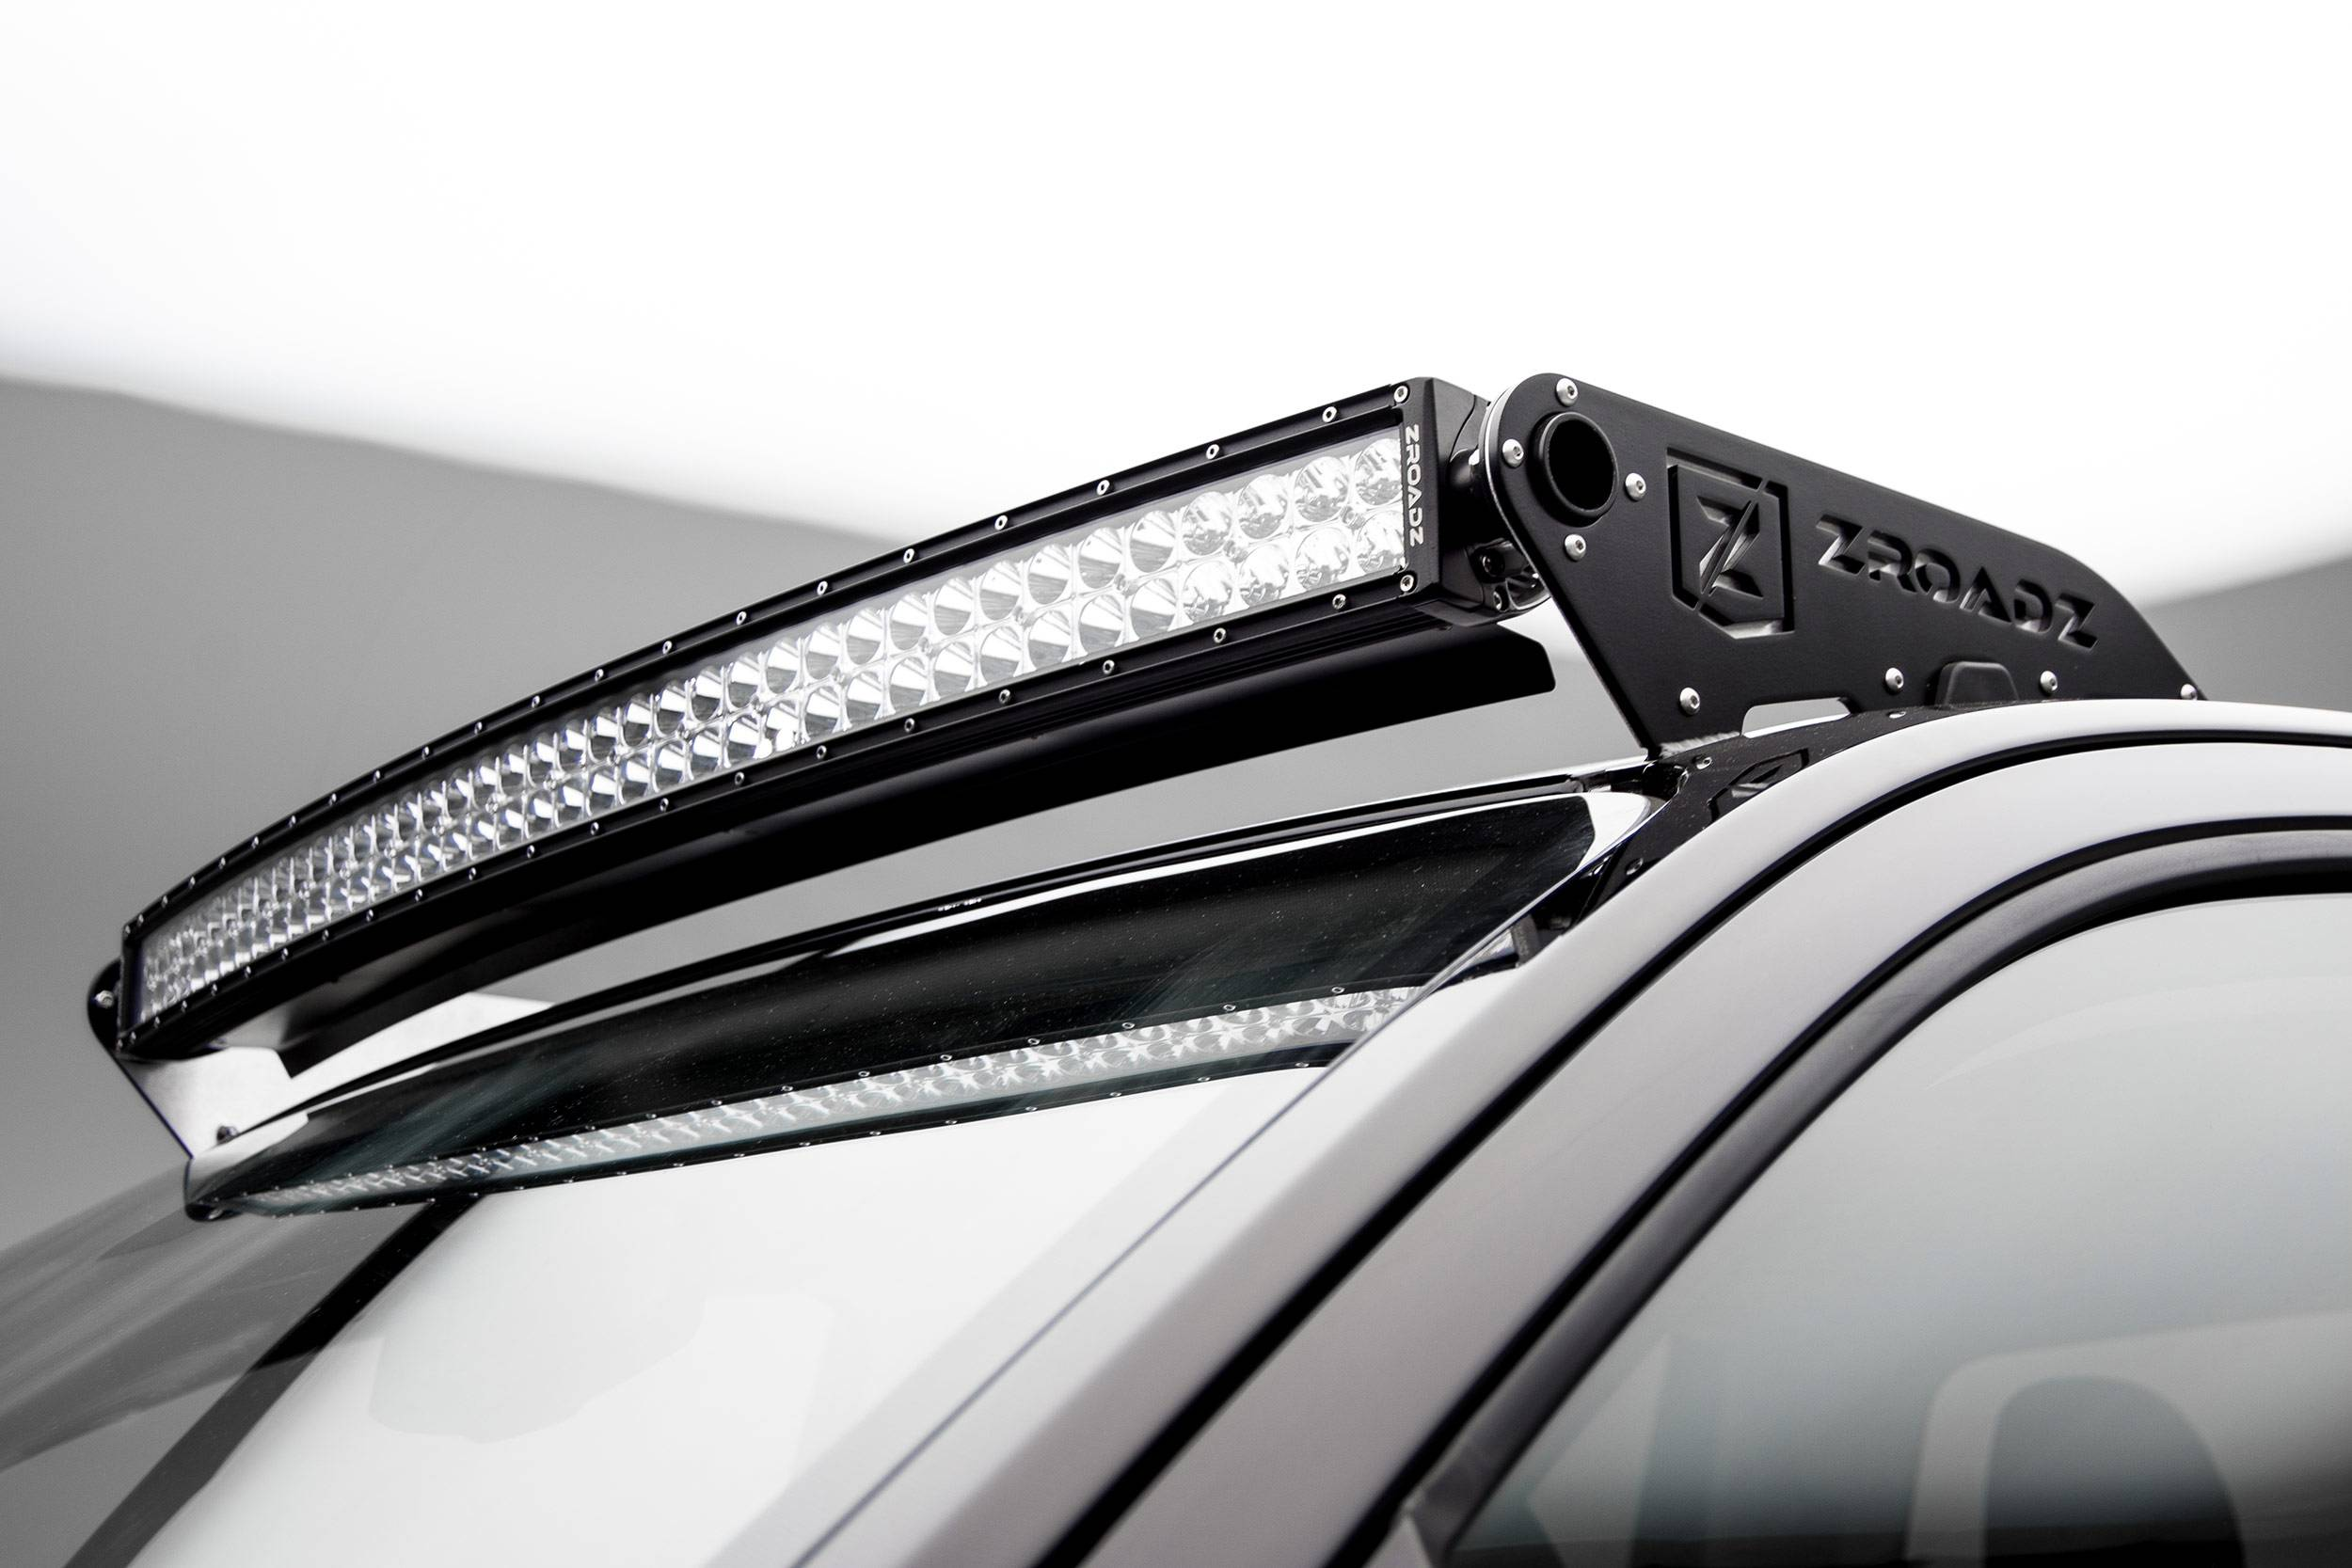 2015 2019 Colorado Canyon Front Roof Led Bracket To Mount 1 40 Inch Curved Led Light Bar Pn Z332671